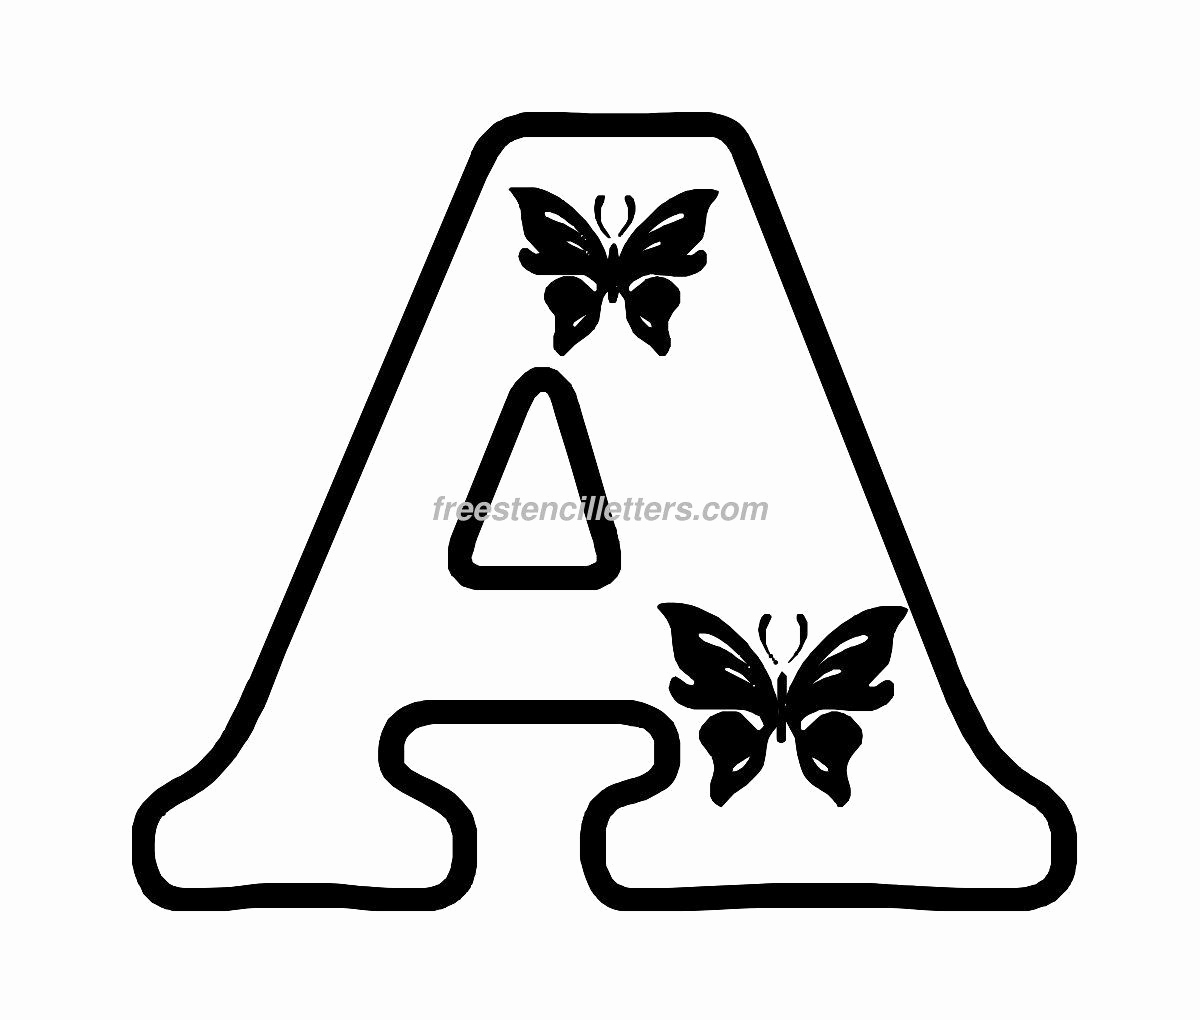 Lettering Stencils to Print Lovely Free butterfly Stencils to Print